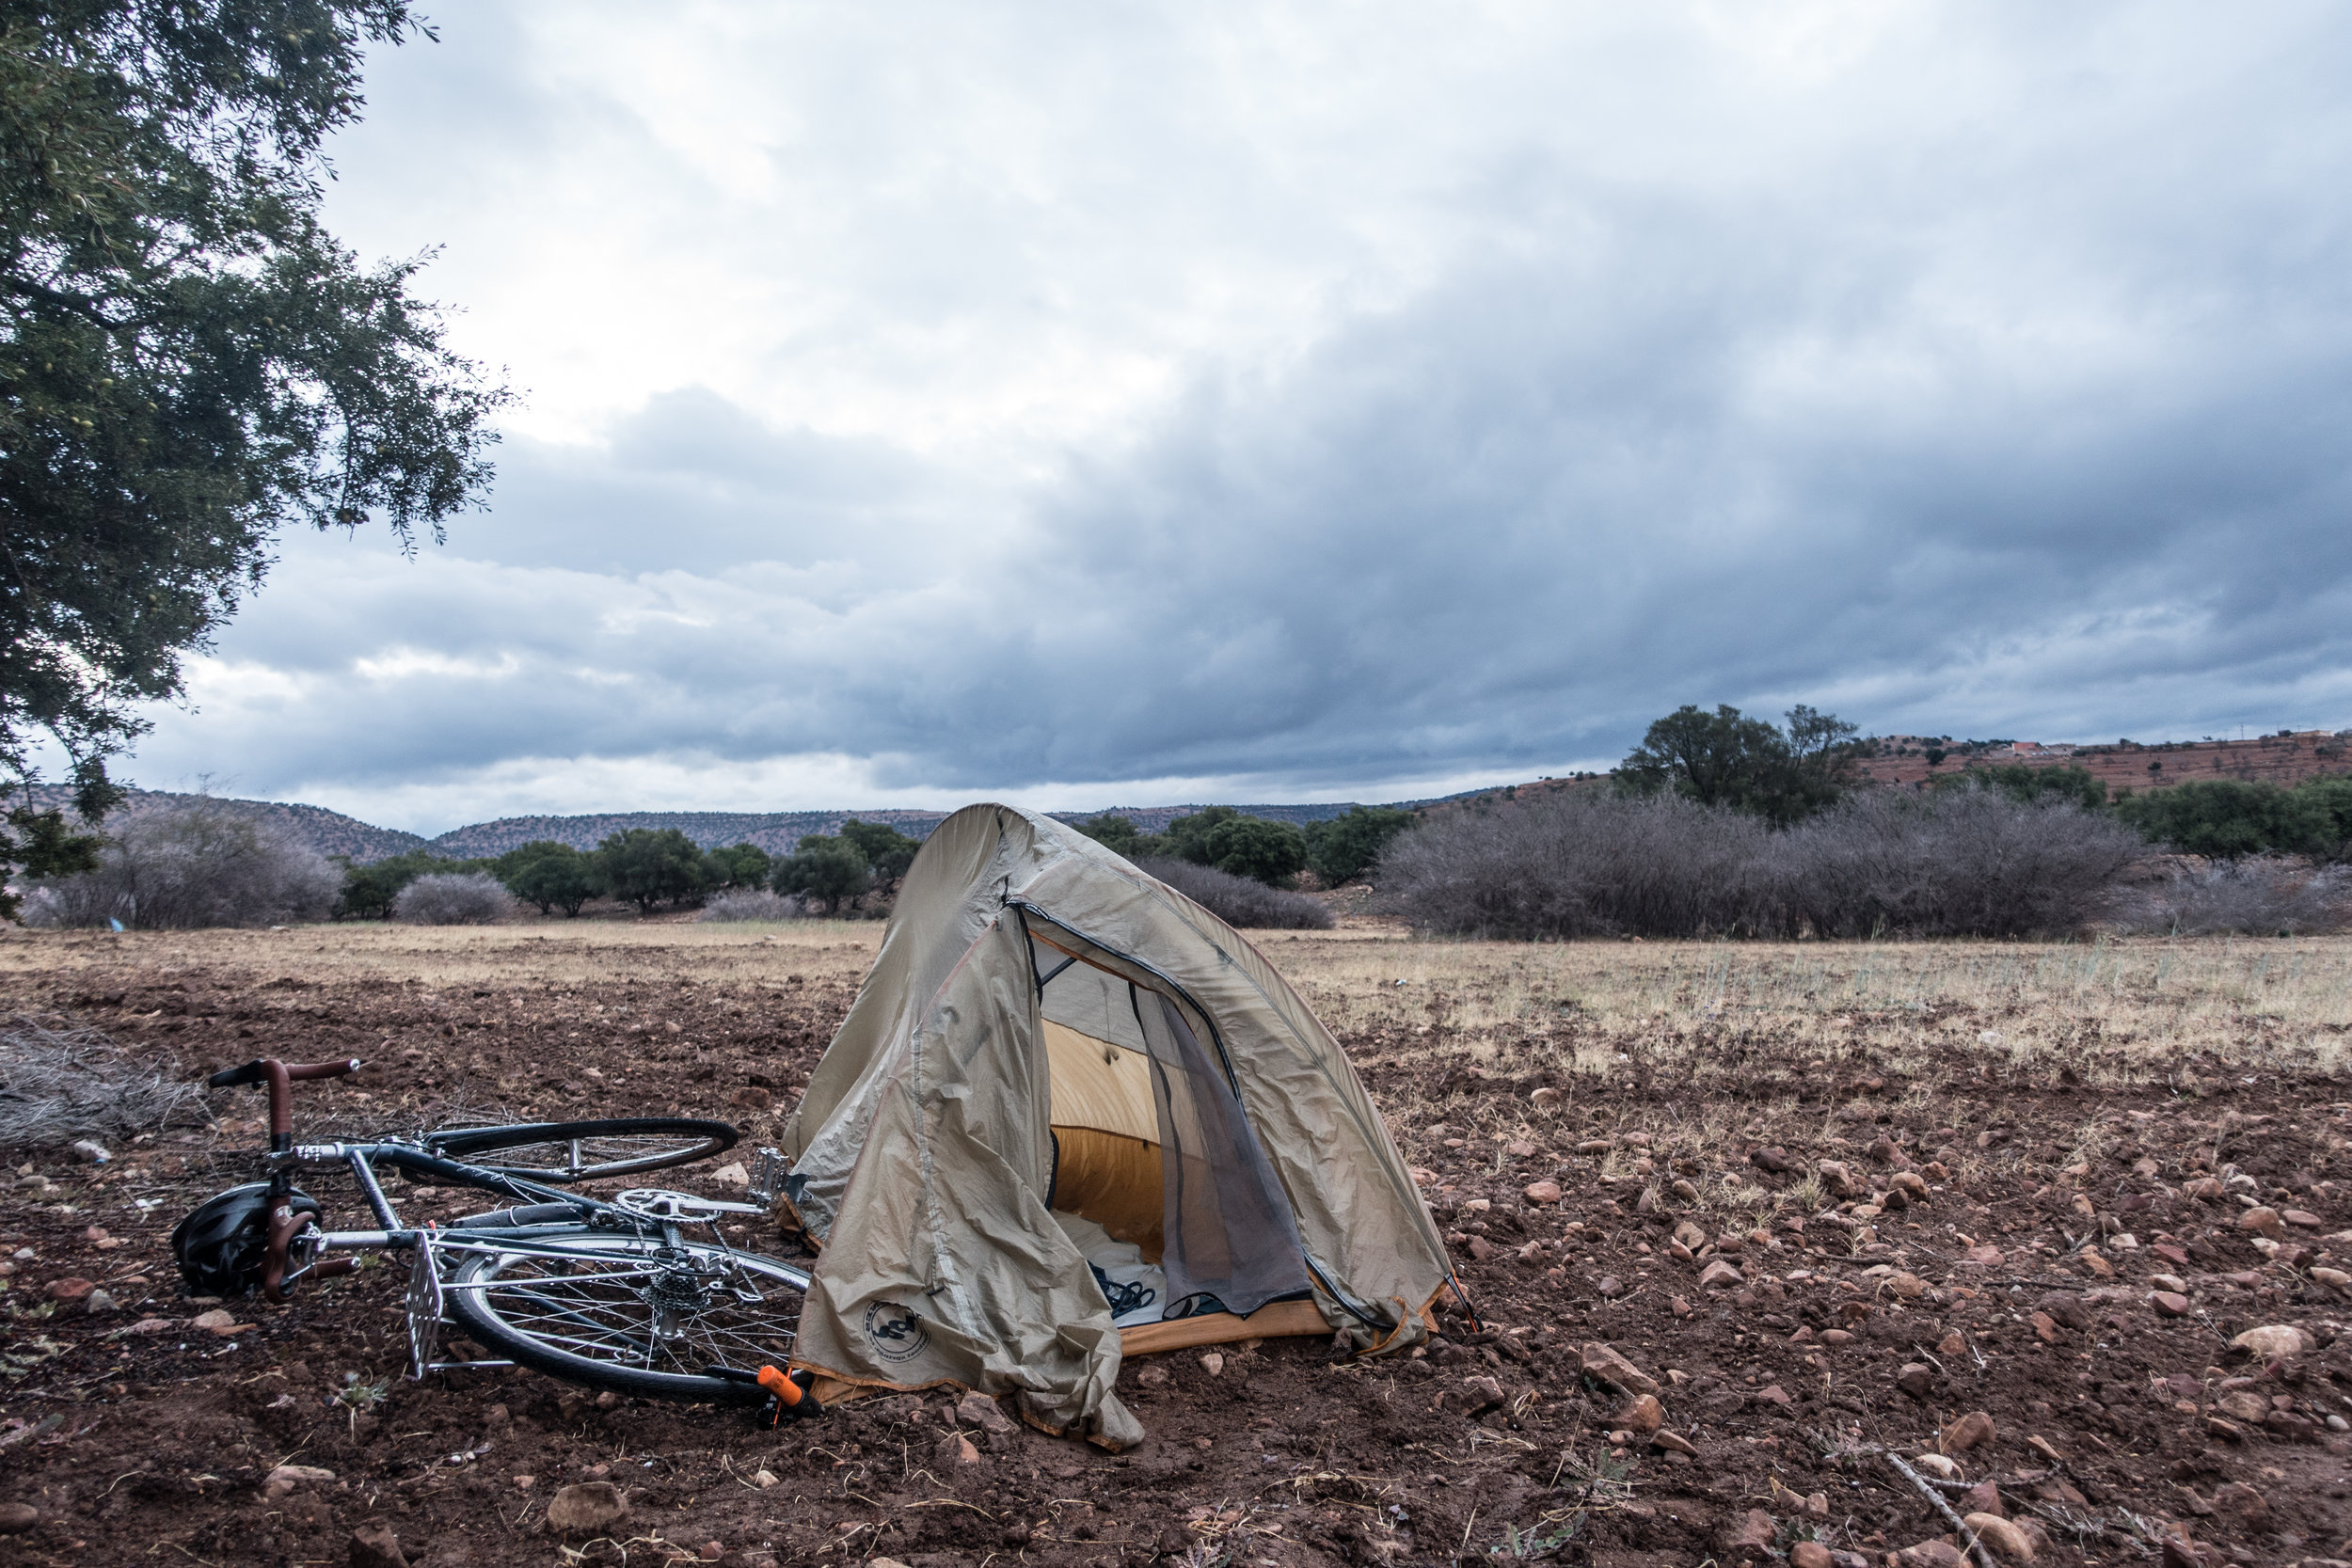 Wild camping on bumpy soil in the mountains for 0 dirham.